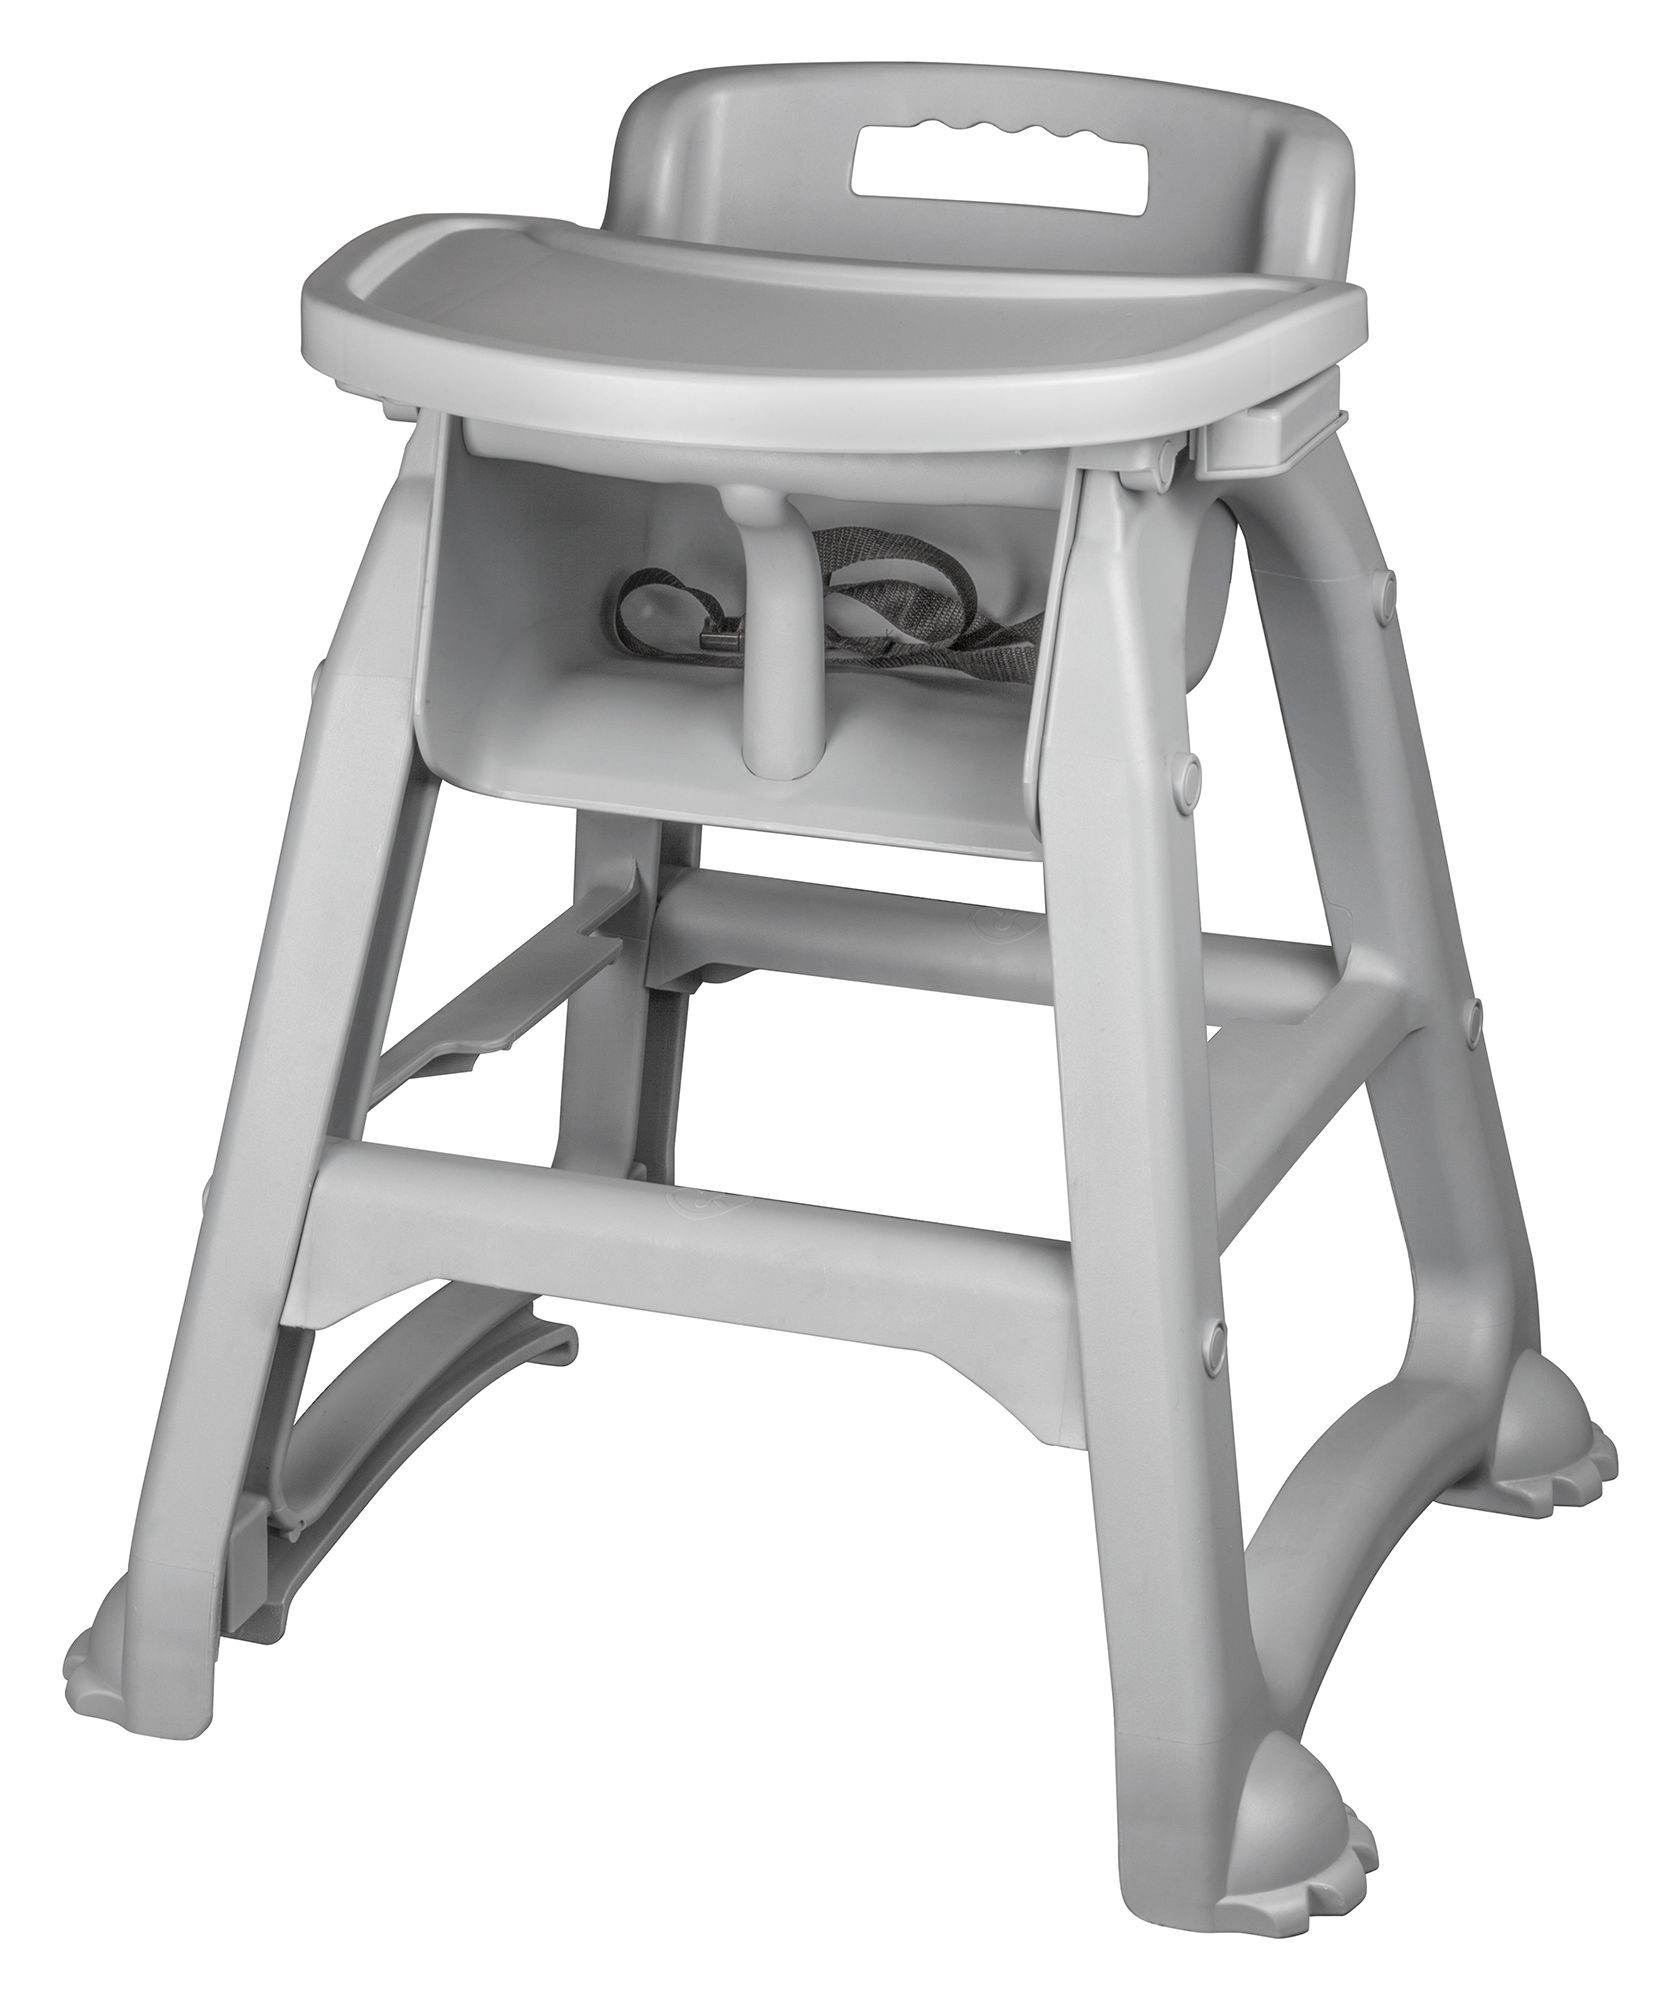 Winco CHH-25 High Chair with Tray, Plastic